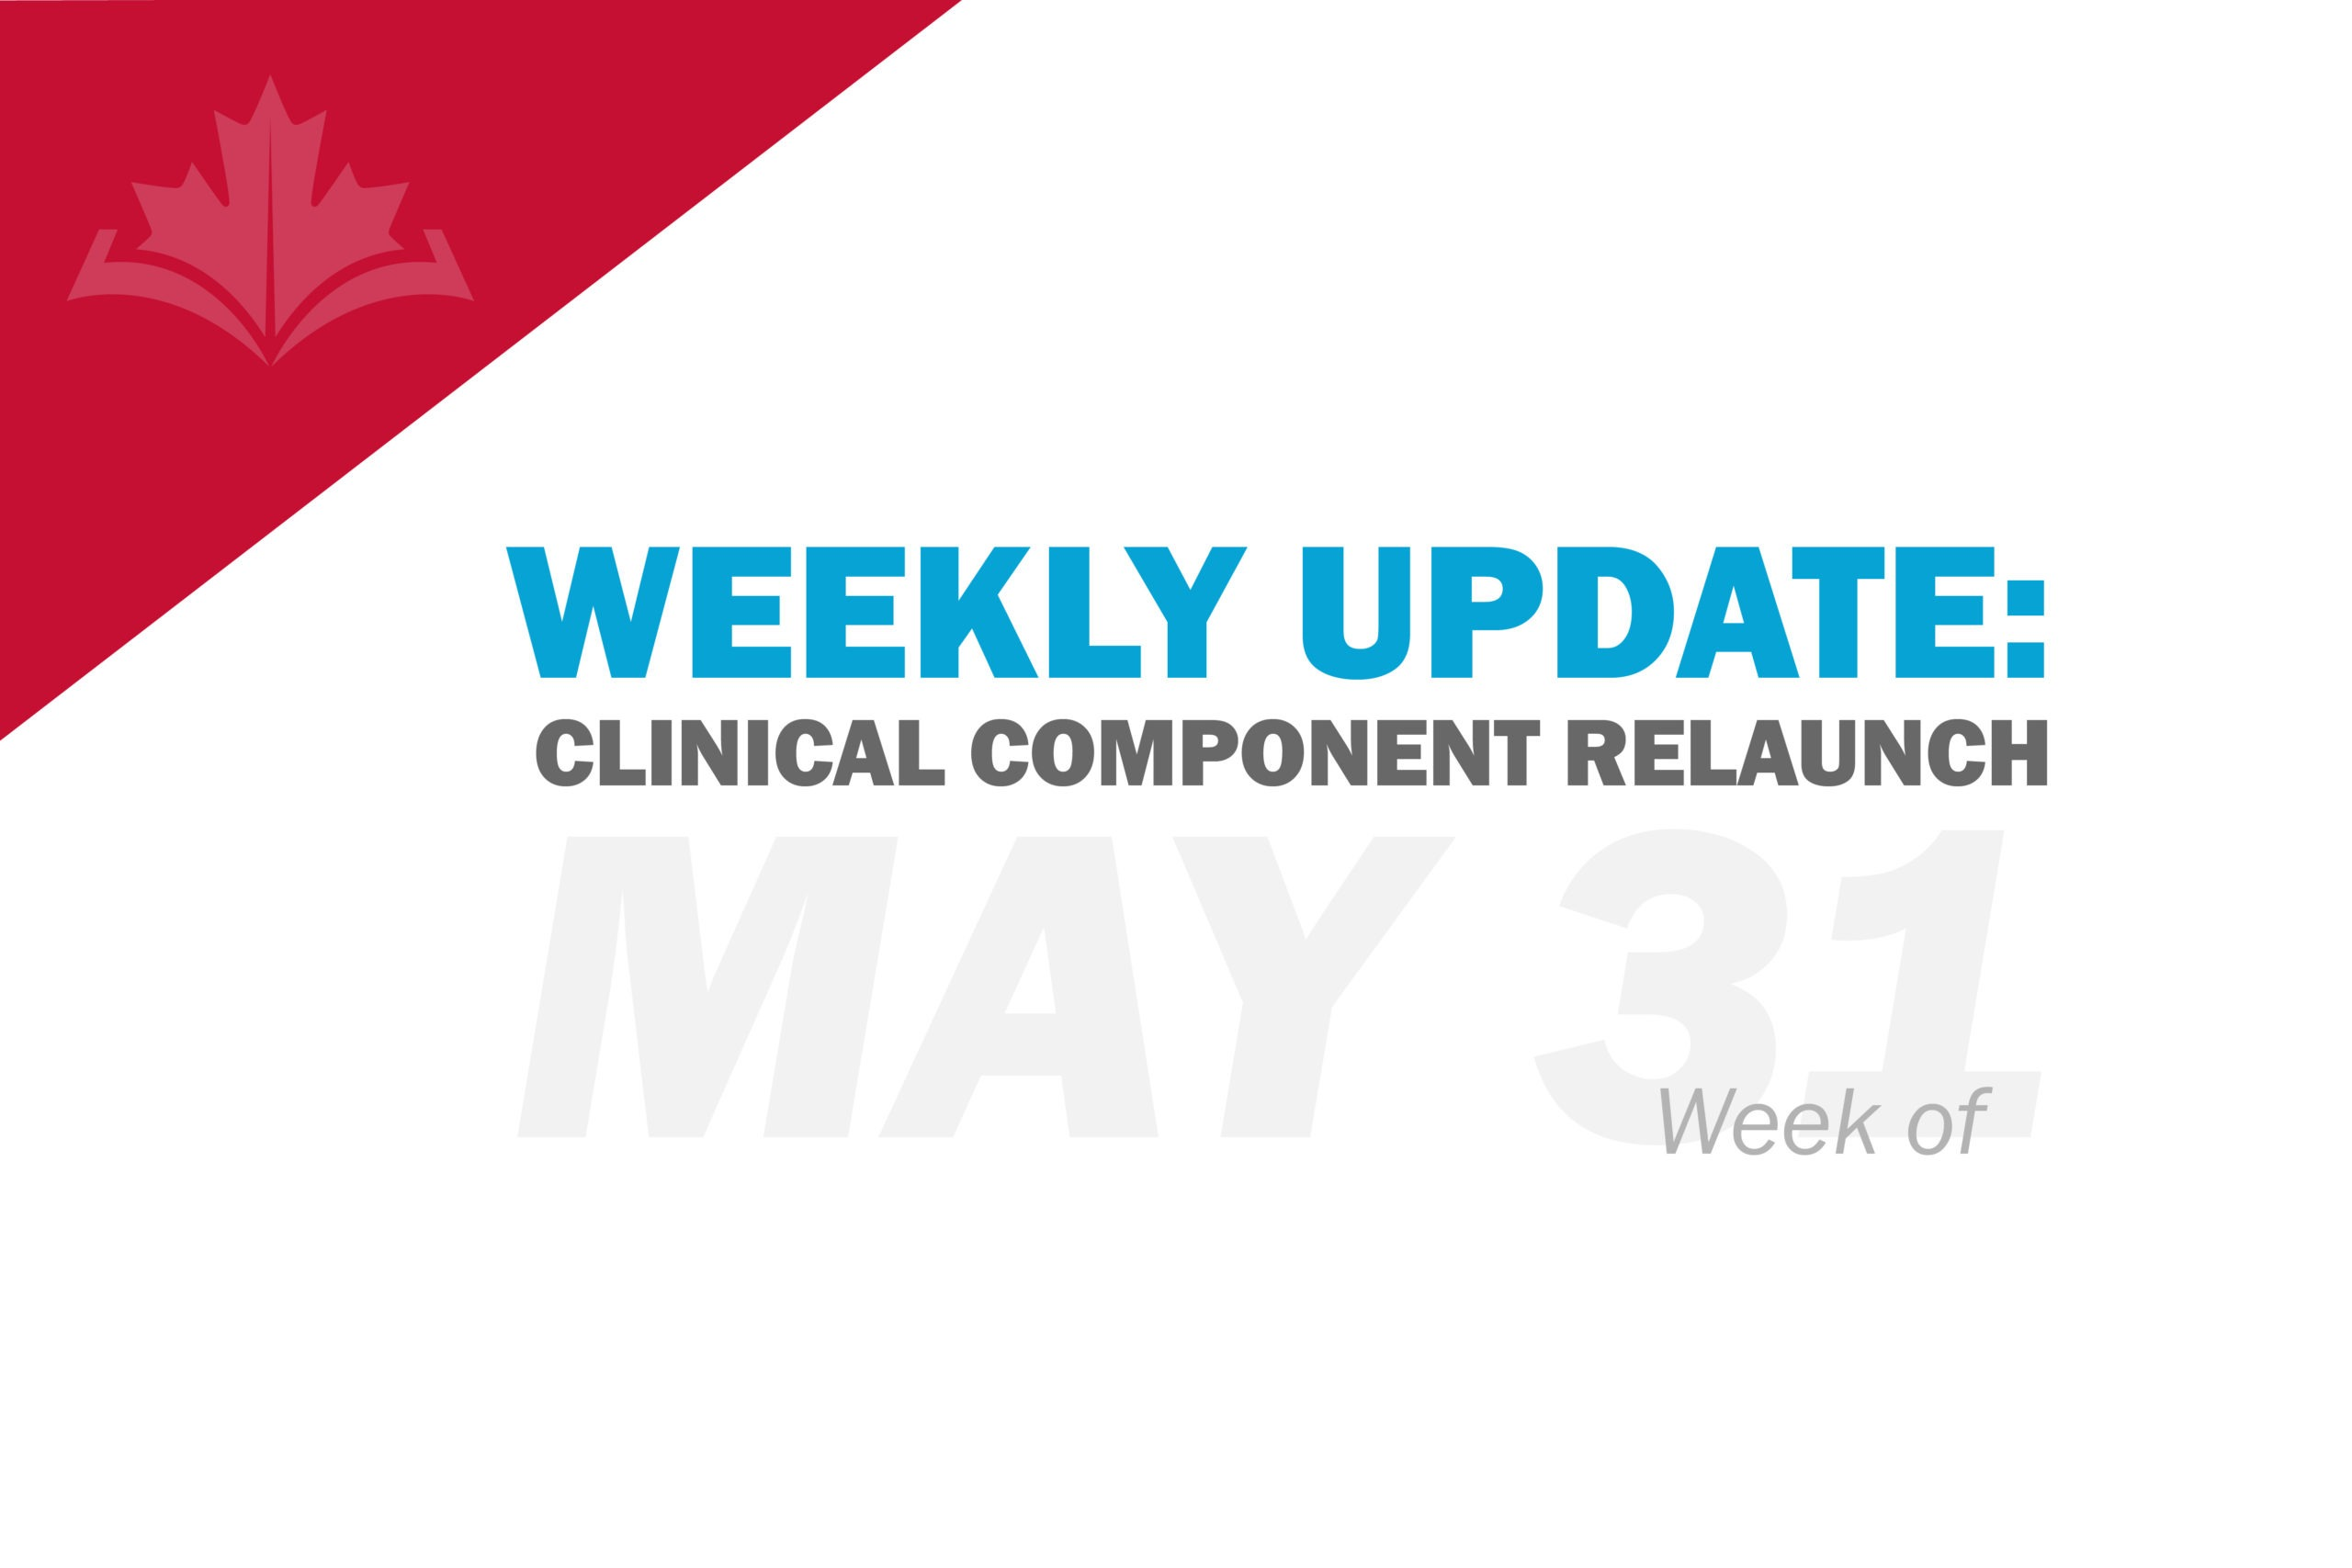 Clinical Component Update: Week of May 31, 2021